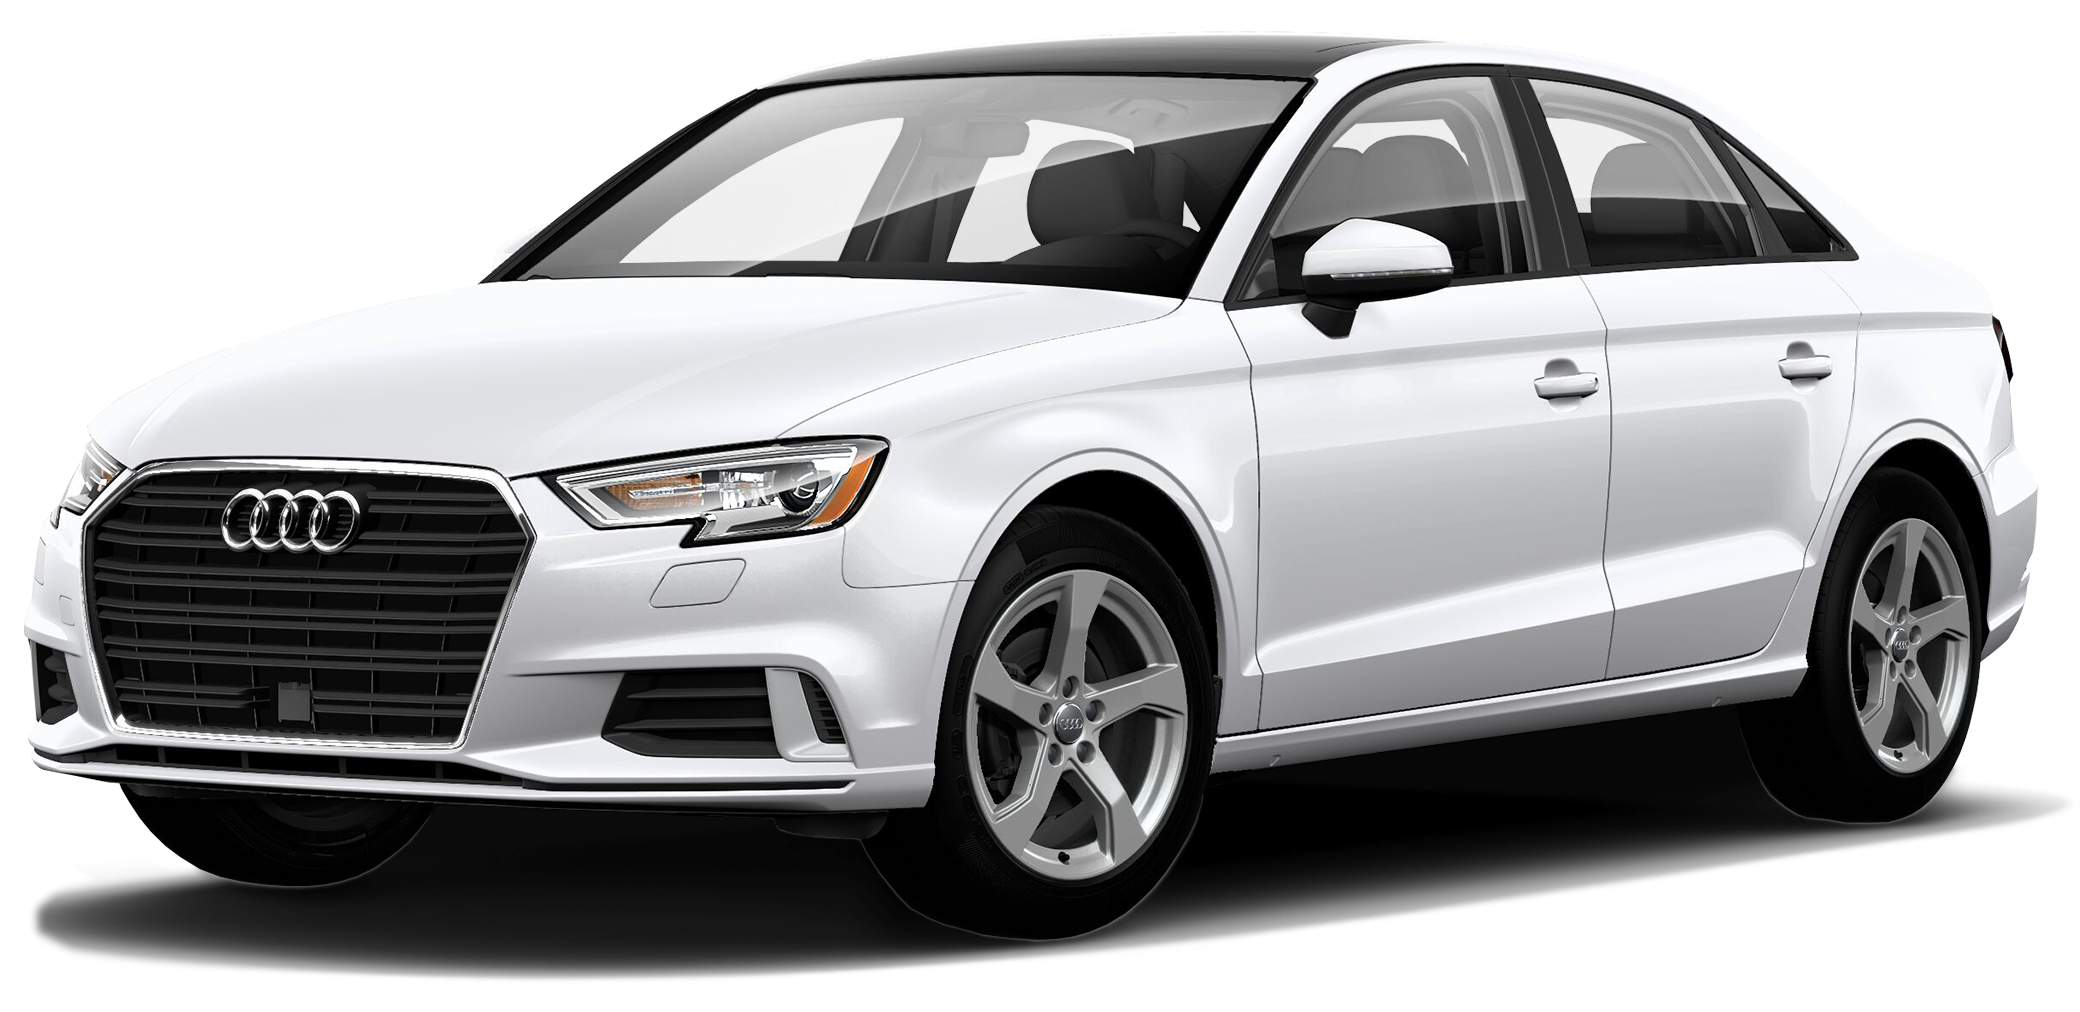 2019 audi a3 for sale in coral gables fl the collection audi. Black Bedroom Furniture Sets. Home Design Ideas